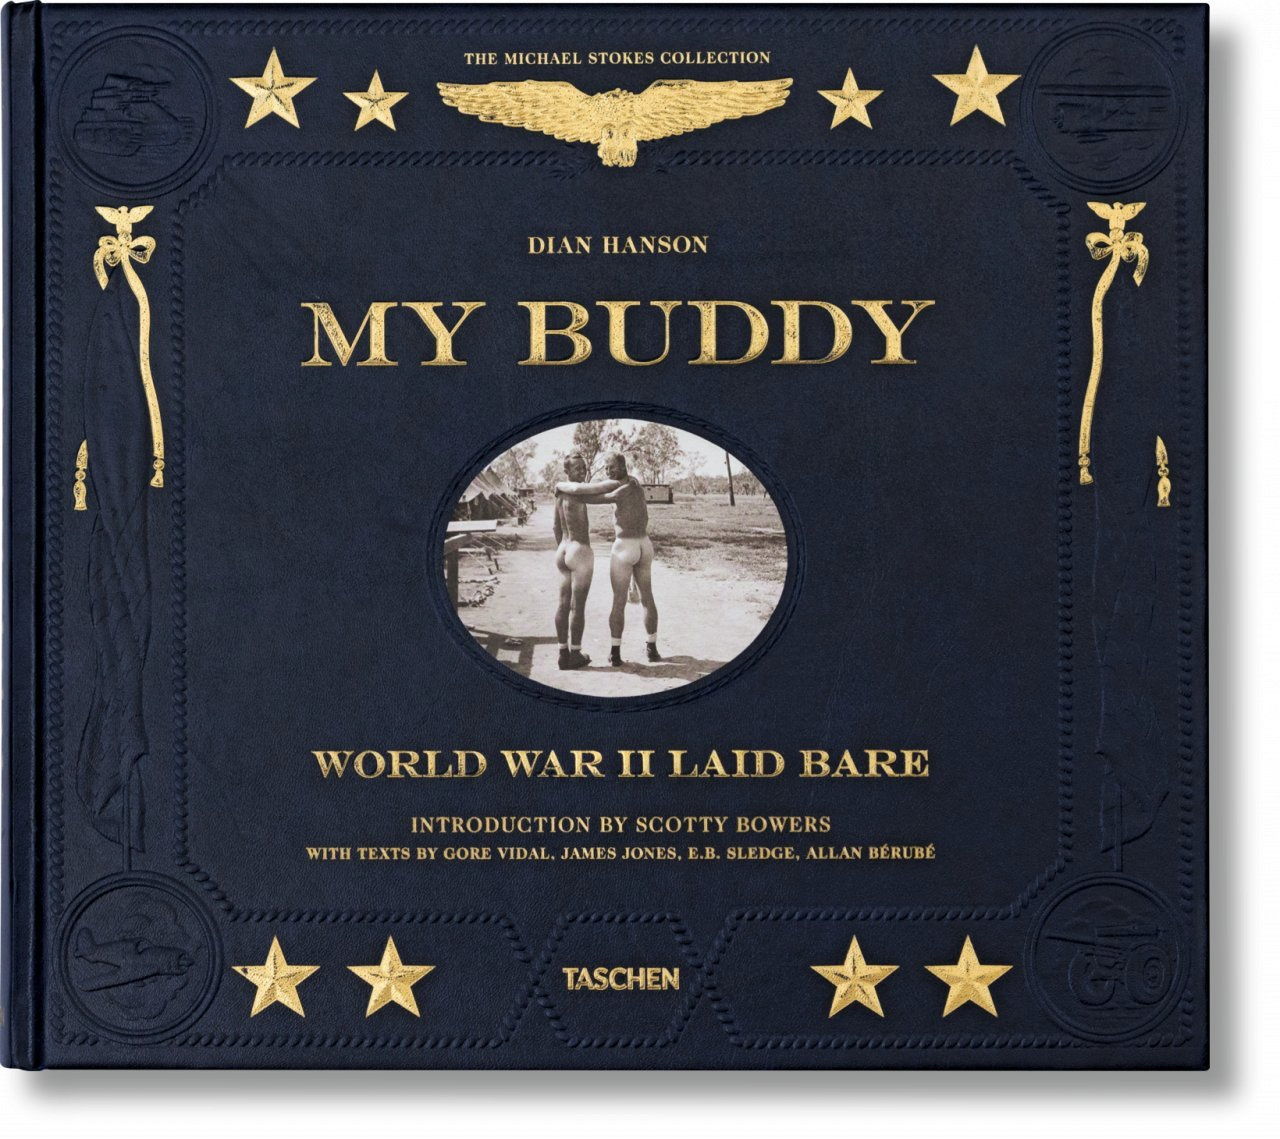 VA-WORLD WAR II, MY BUDDY-TRILINGUE